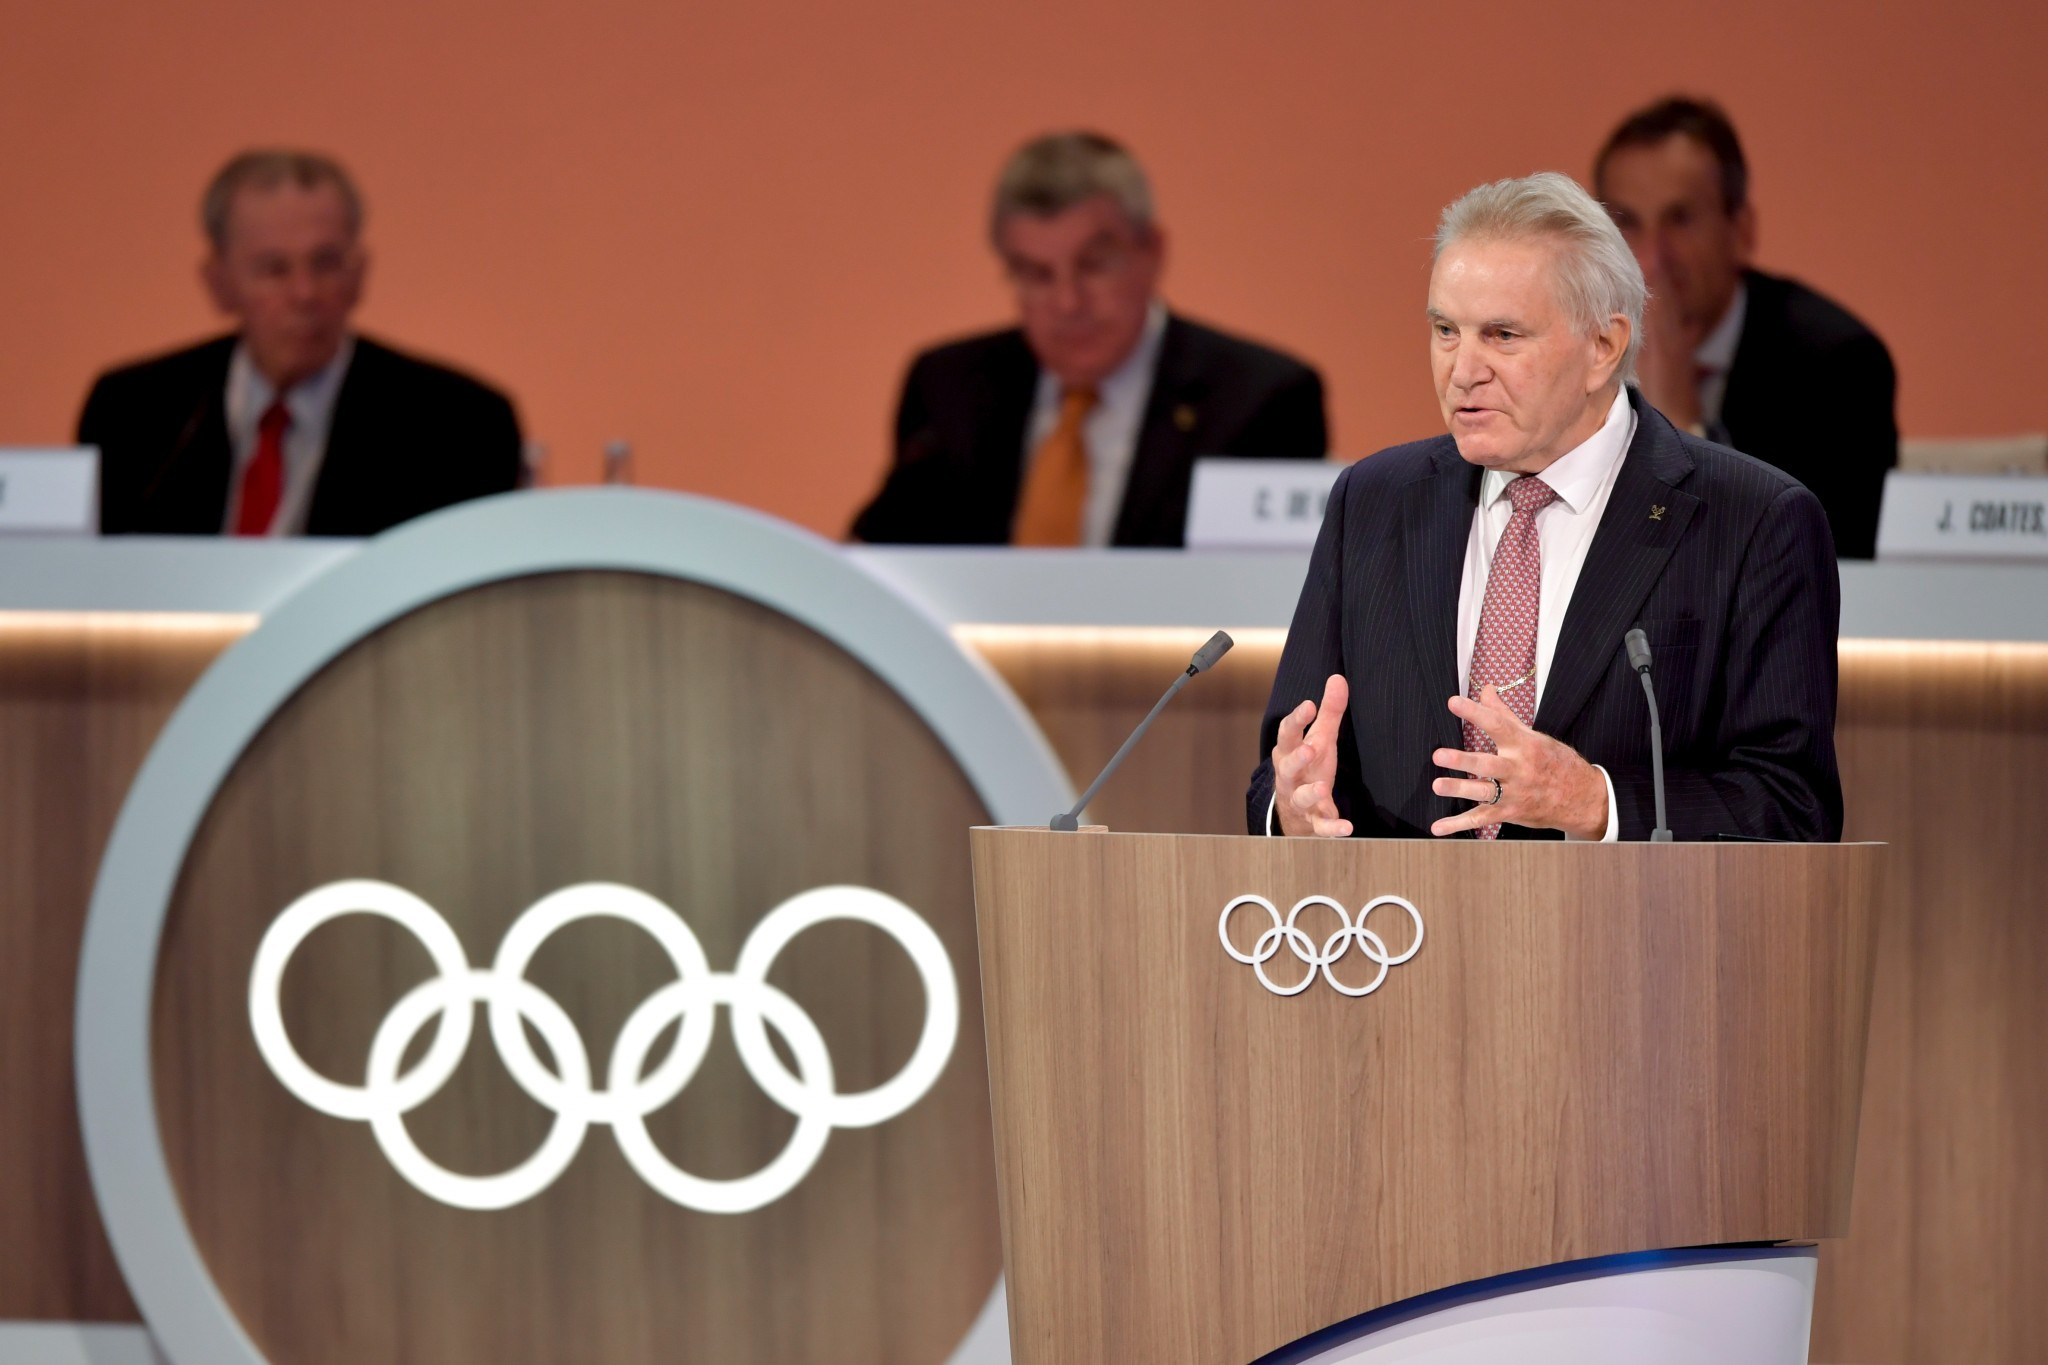 Switzerland's Denis Oswald was the final member elected to the Executive Board ©Getty Images